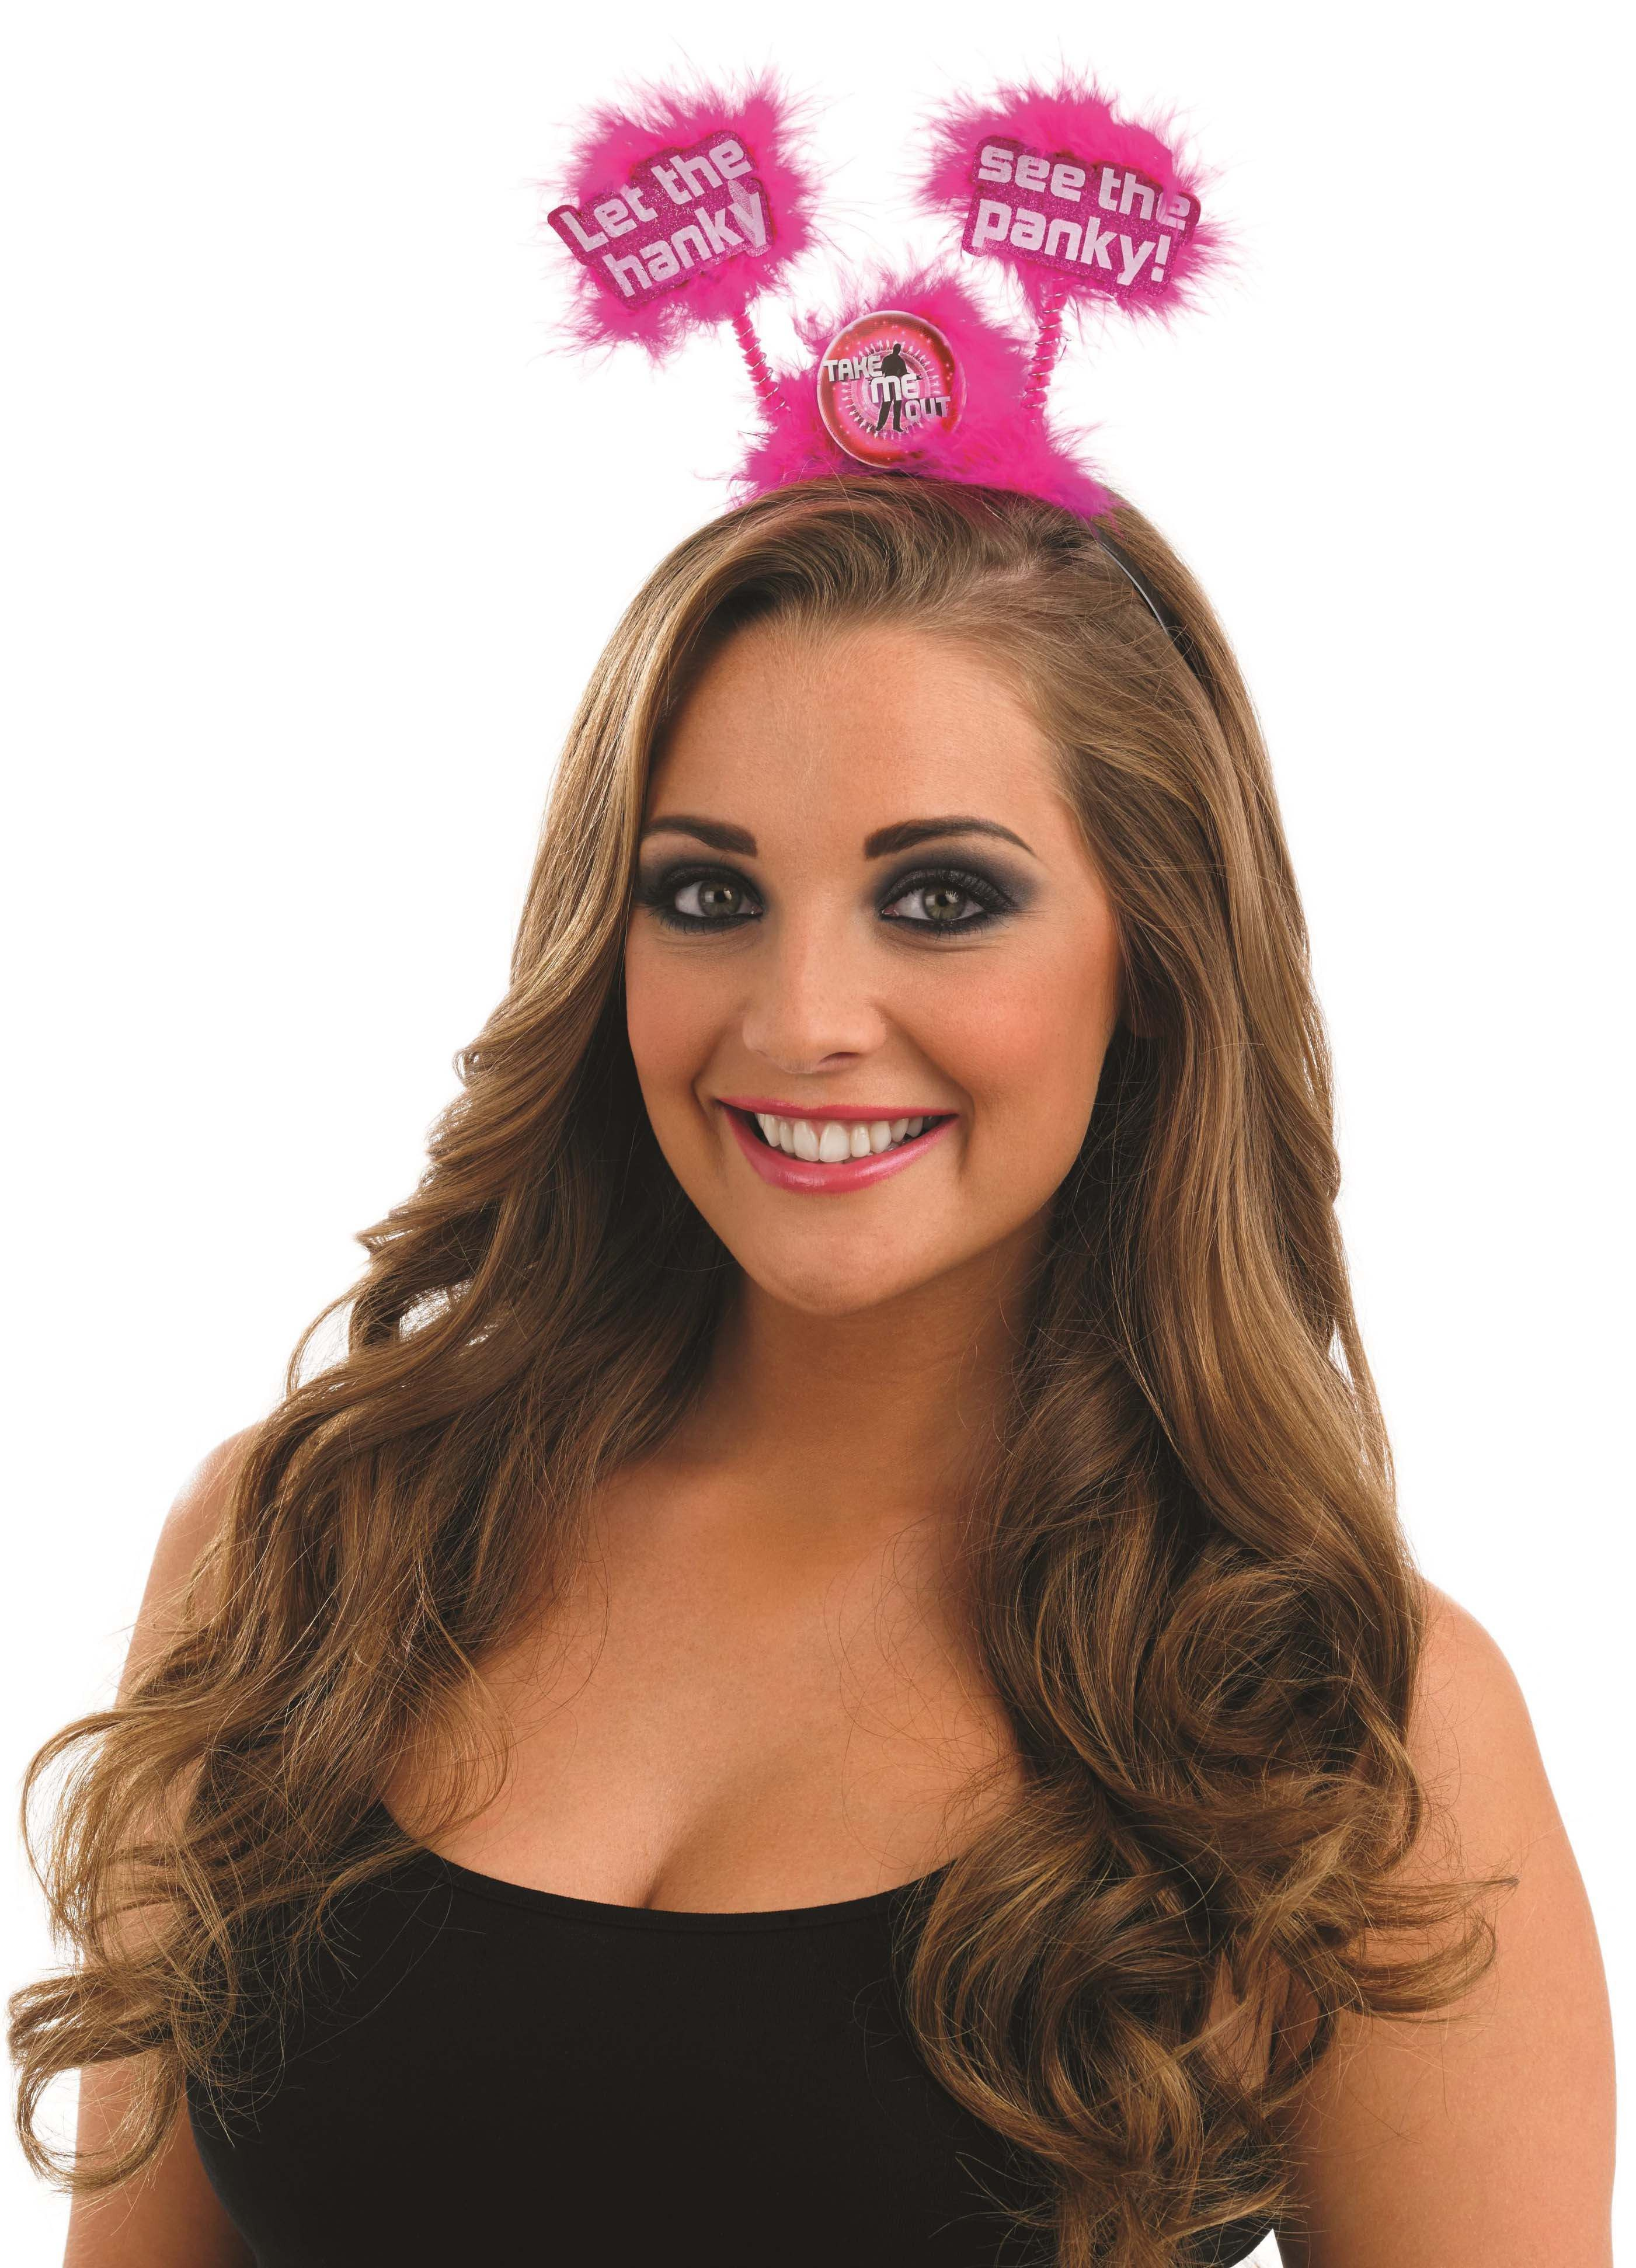 Take Me Out Hen Party Accessory Let The Hanky See The Panky Head Boppers